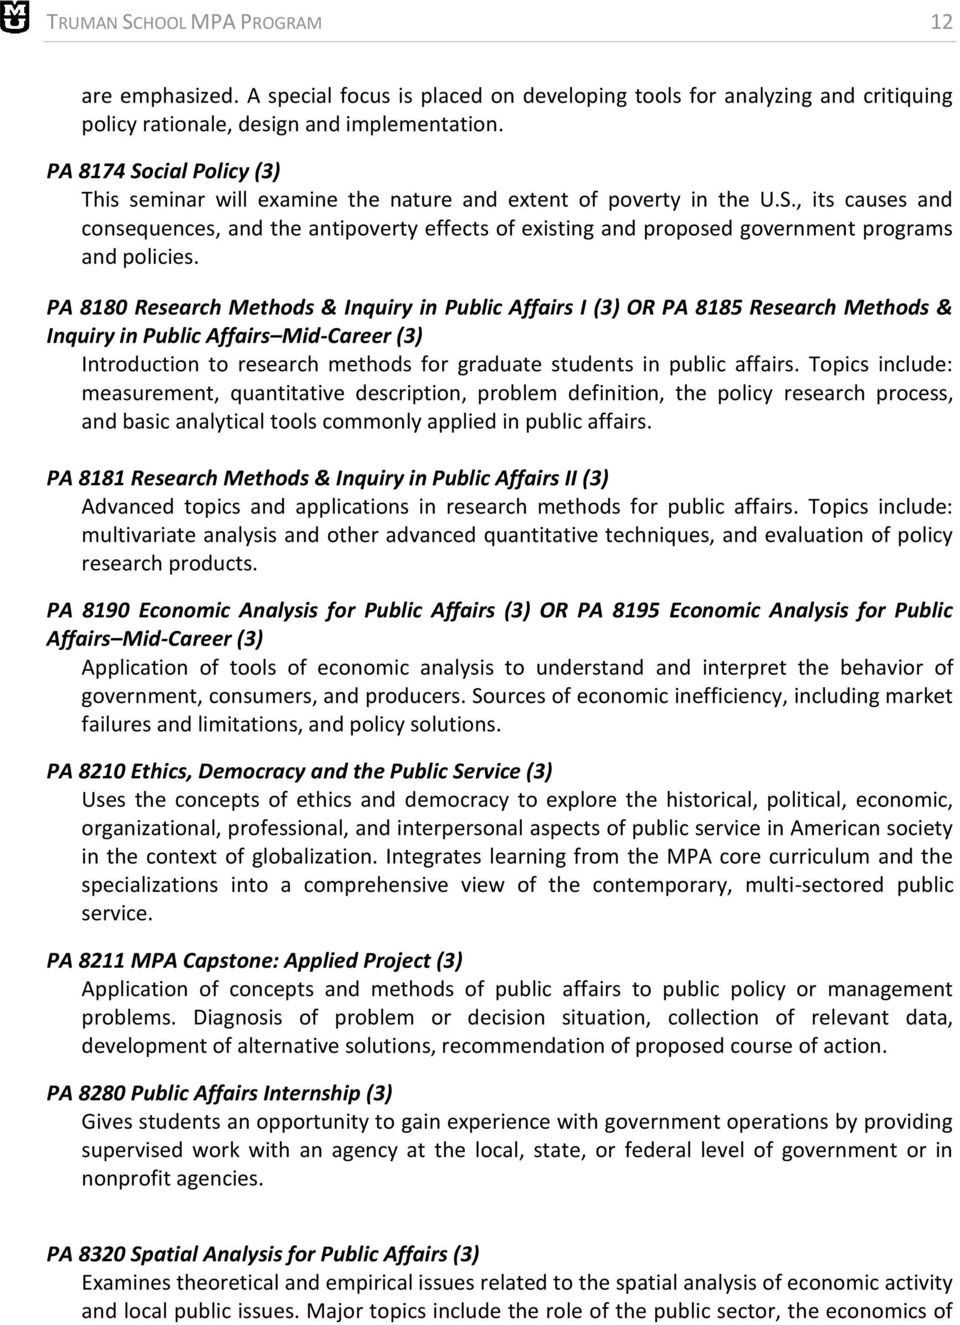 PA 8180 Research Methods & Inquiry in Public Affairs I (3) OR PA 8185 Research Methods & Inquiry in Public Affairs Mid-Career (3) Introduction to research methods for graduate students in public